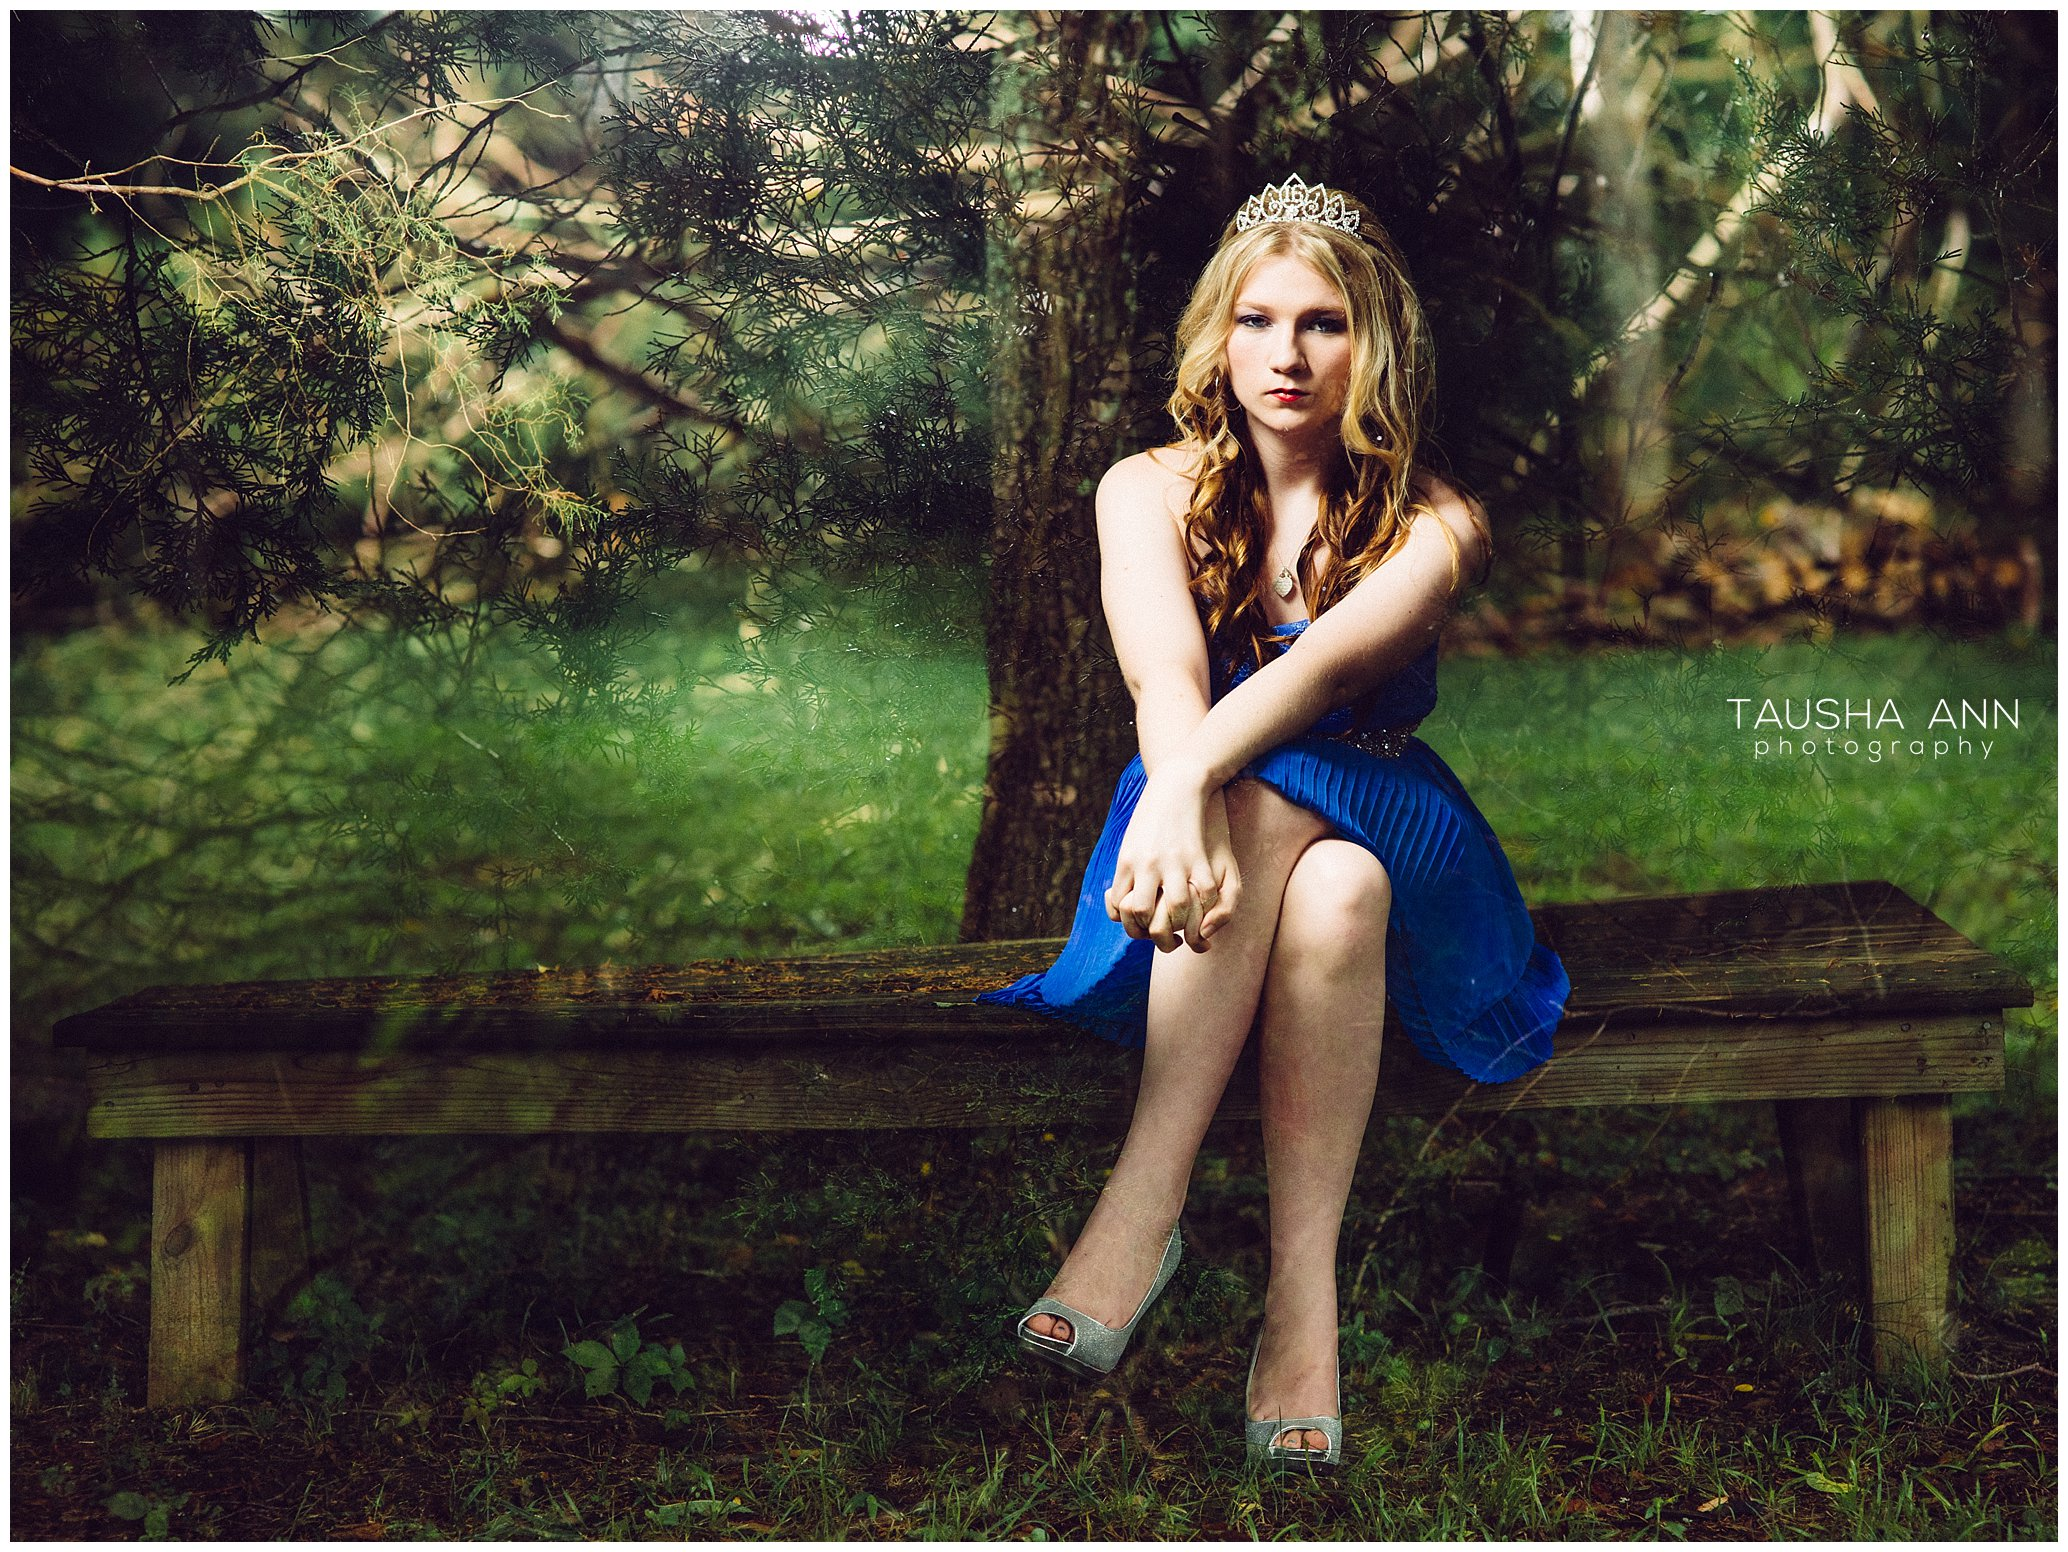 Sammie's_Sweet_16_Duck_Pond_Farm_Mt_Juliet_Tausha_Ann_Photography_Model_Nashville_Franklin_Spinning_Blue_Dress_Tiara_Sitting_On_Bench_Tree_Doube_Exposure